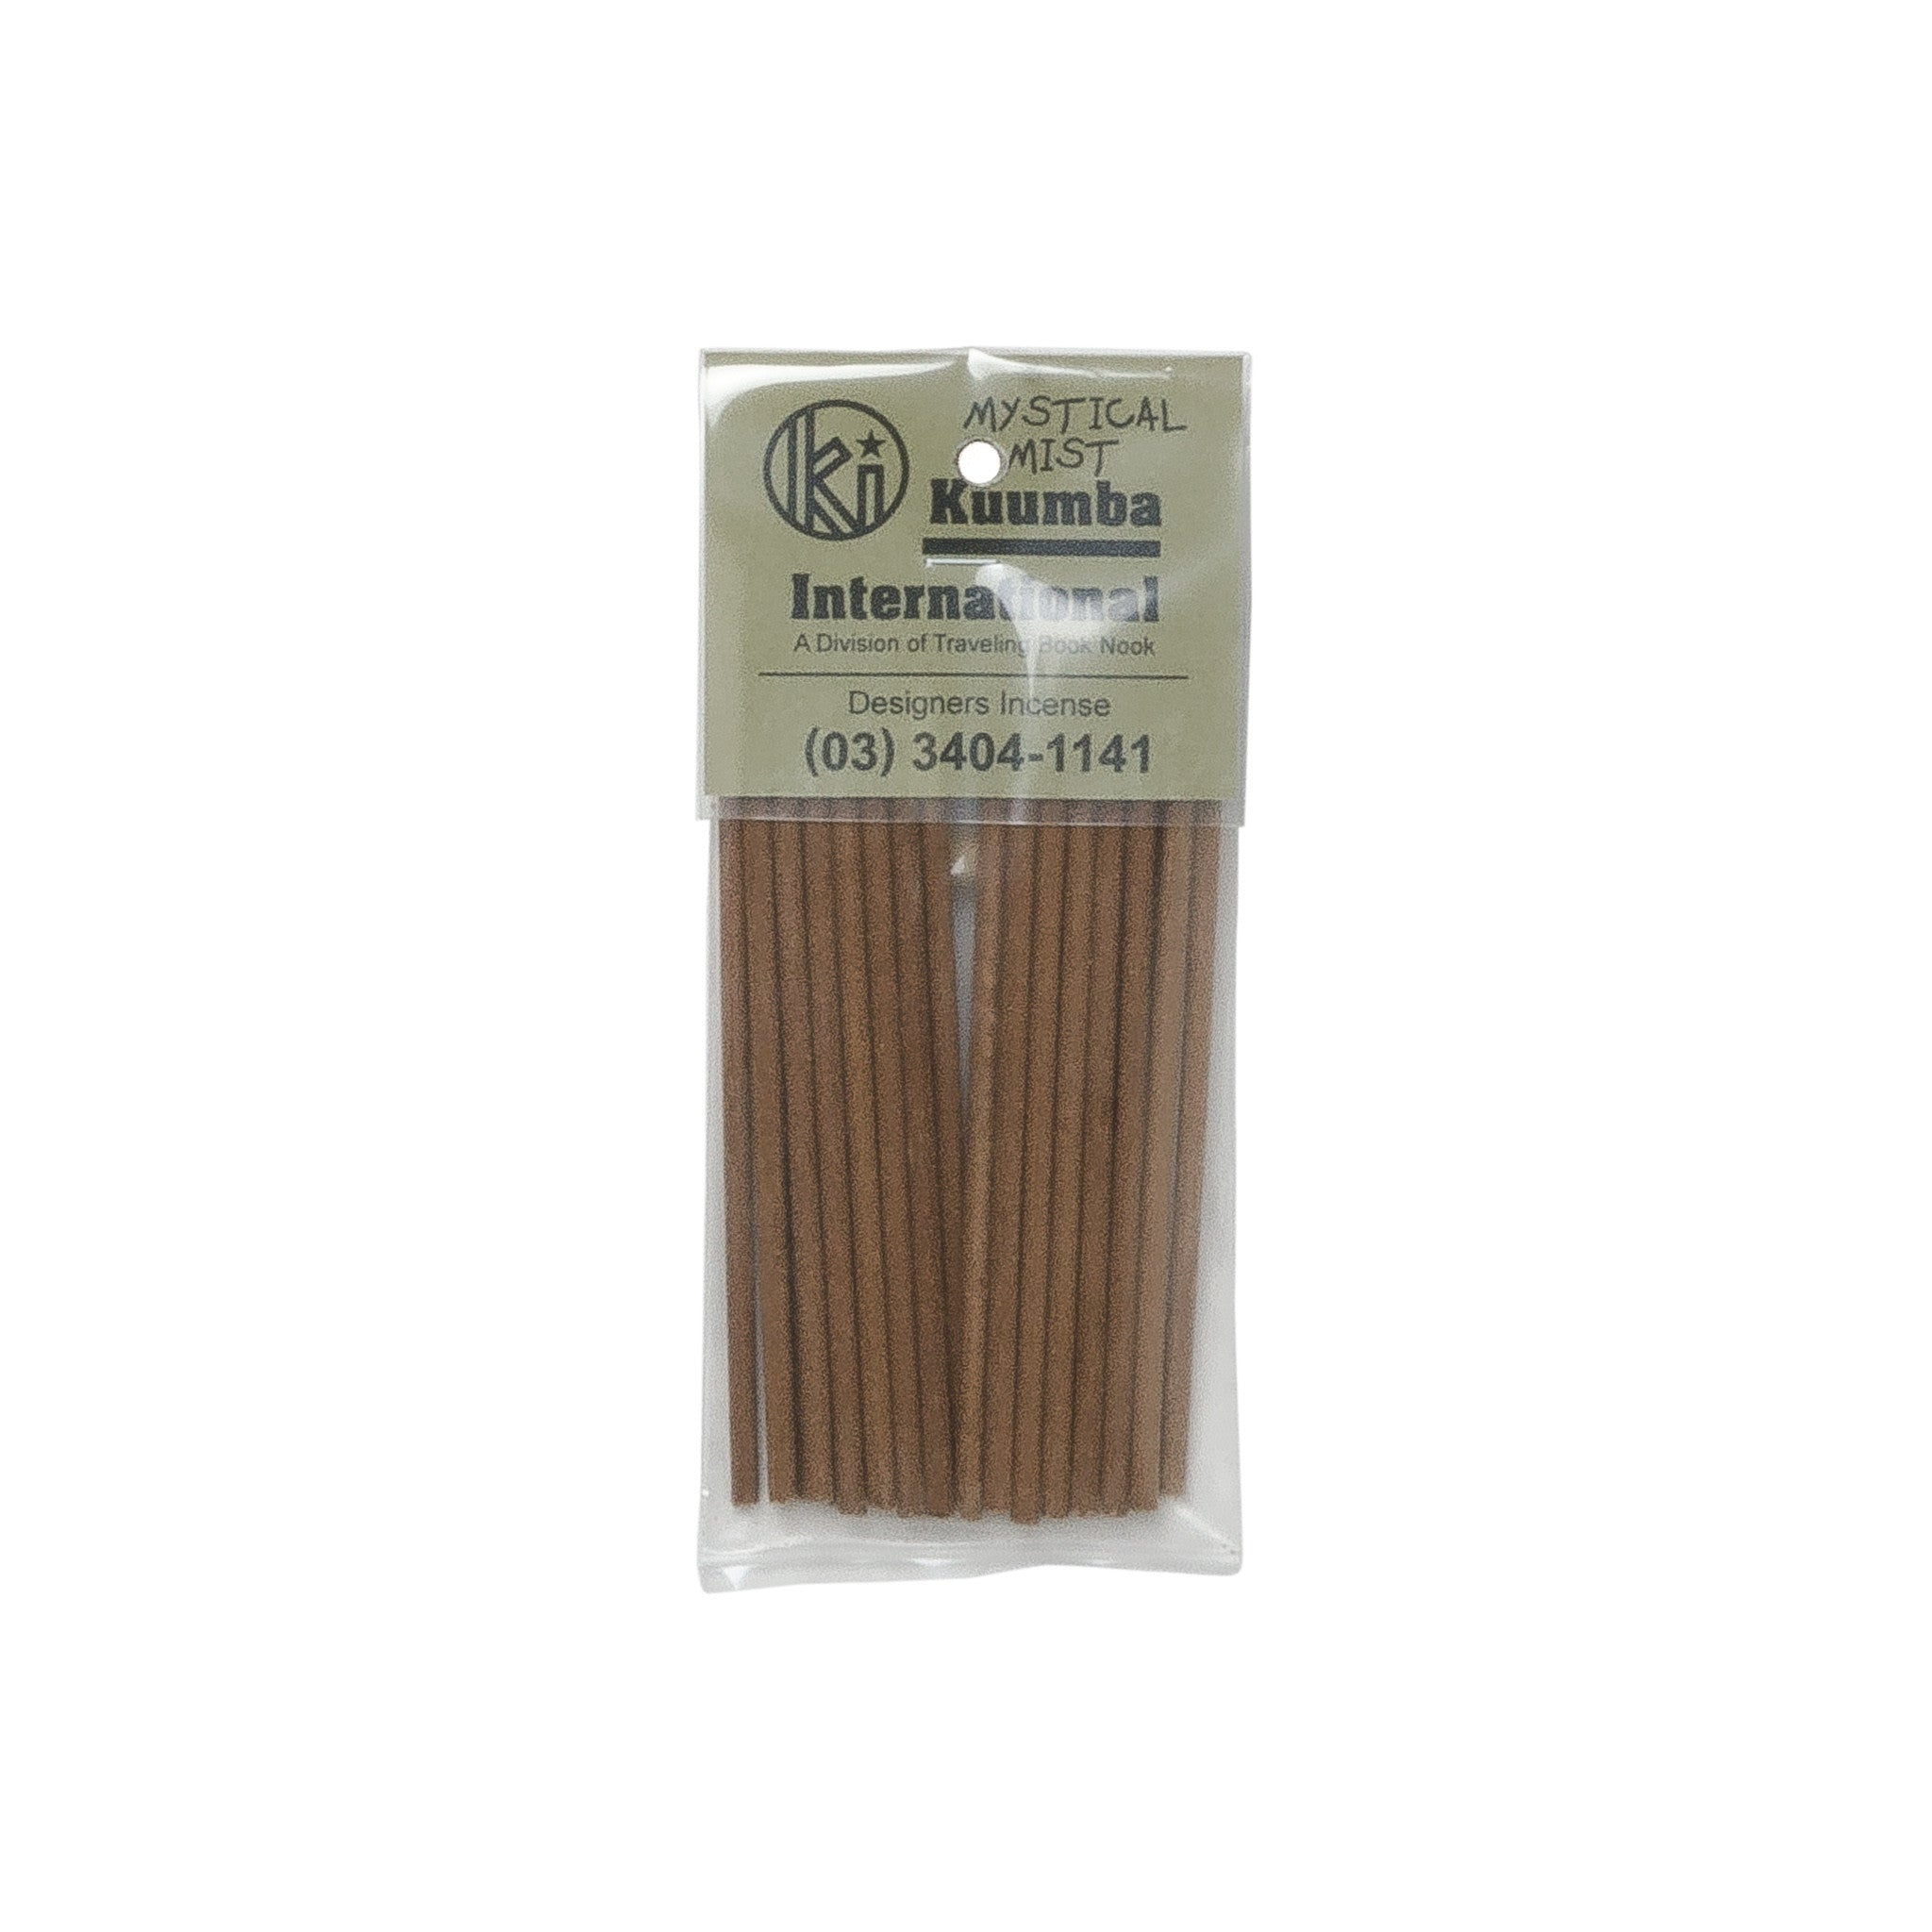 Mystical Mist Mini Incense